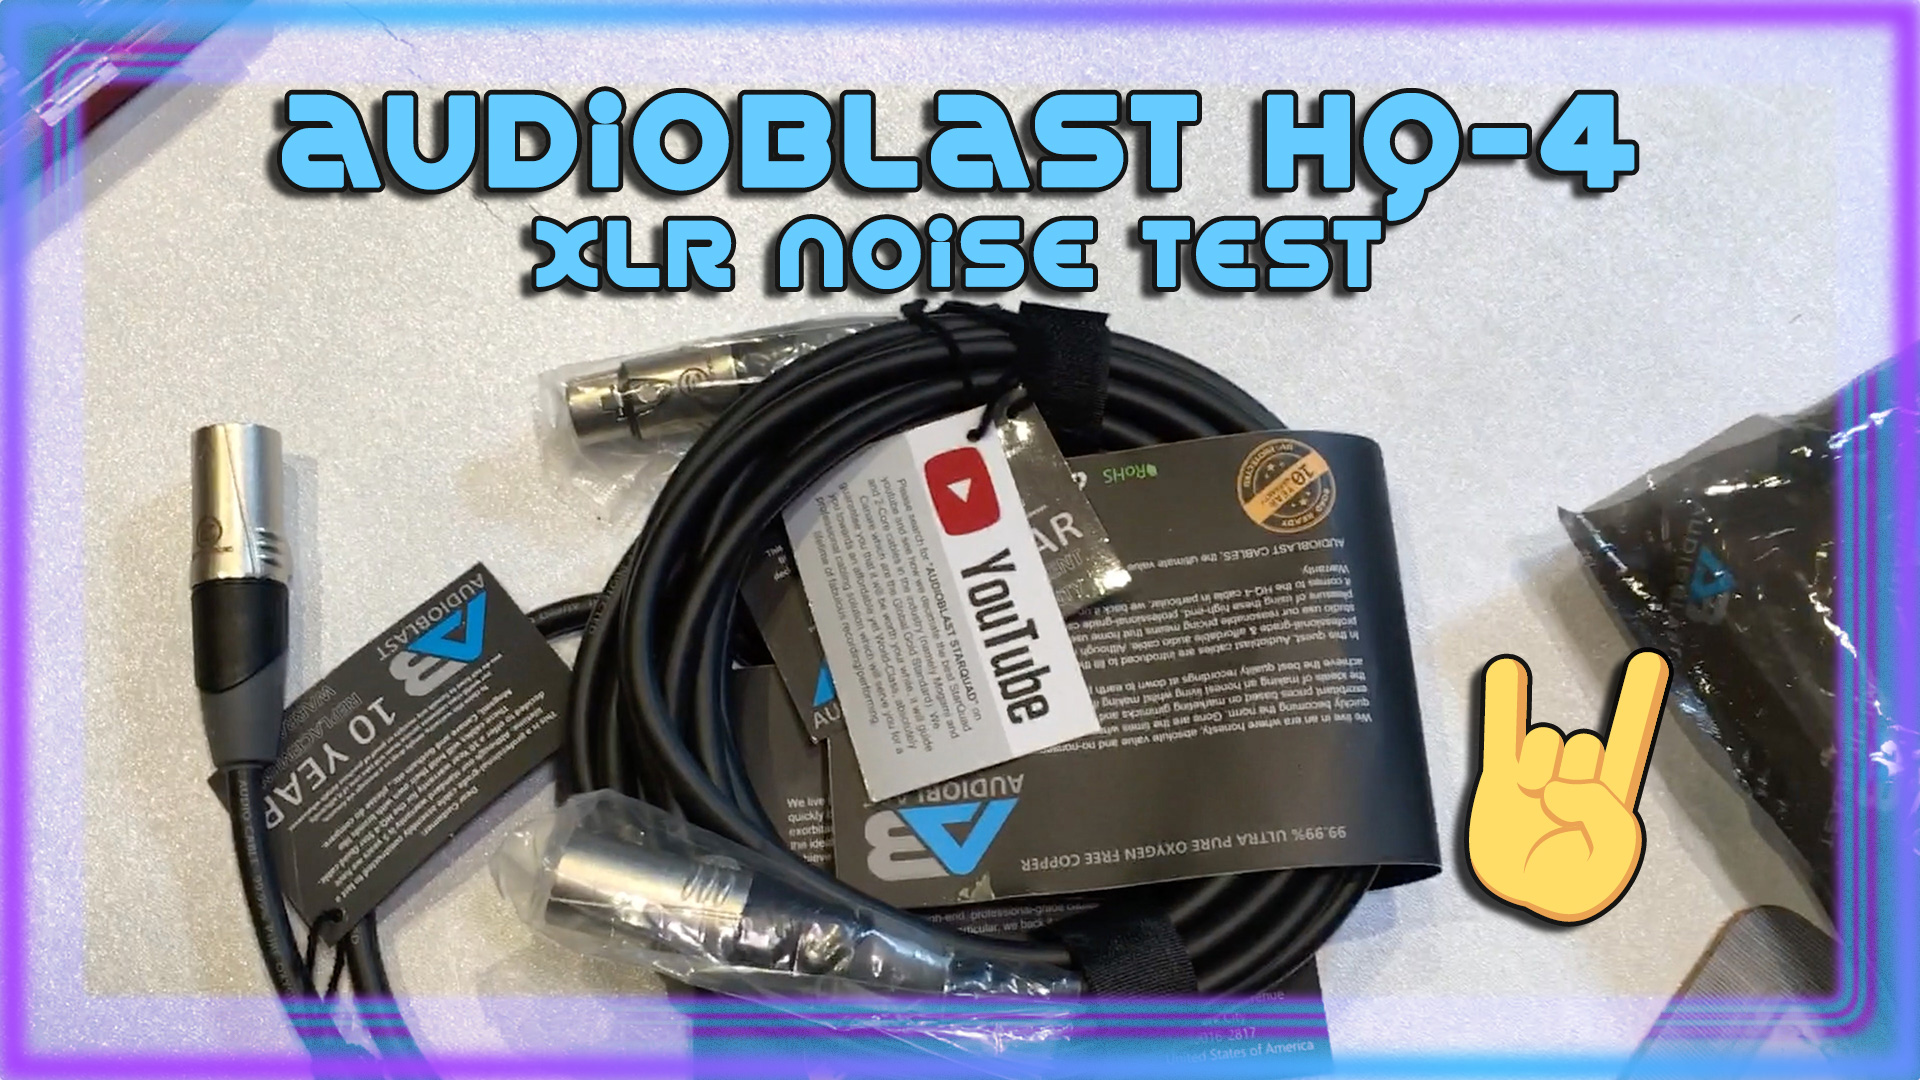 Audioblast HQ-4 XLR Noise Test